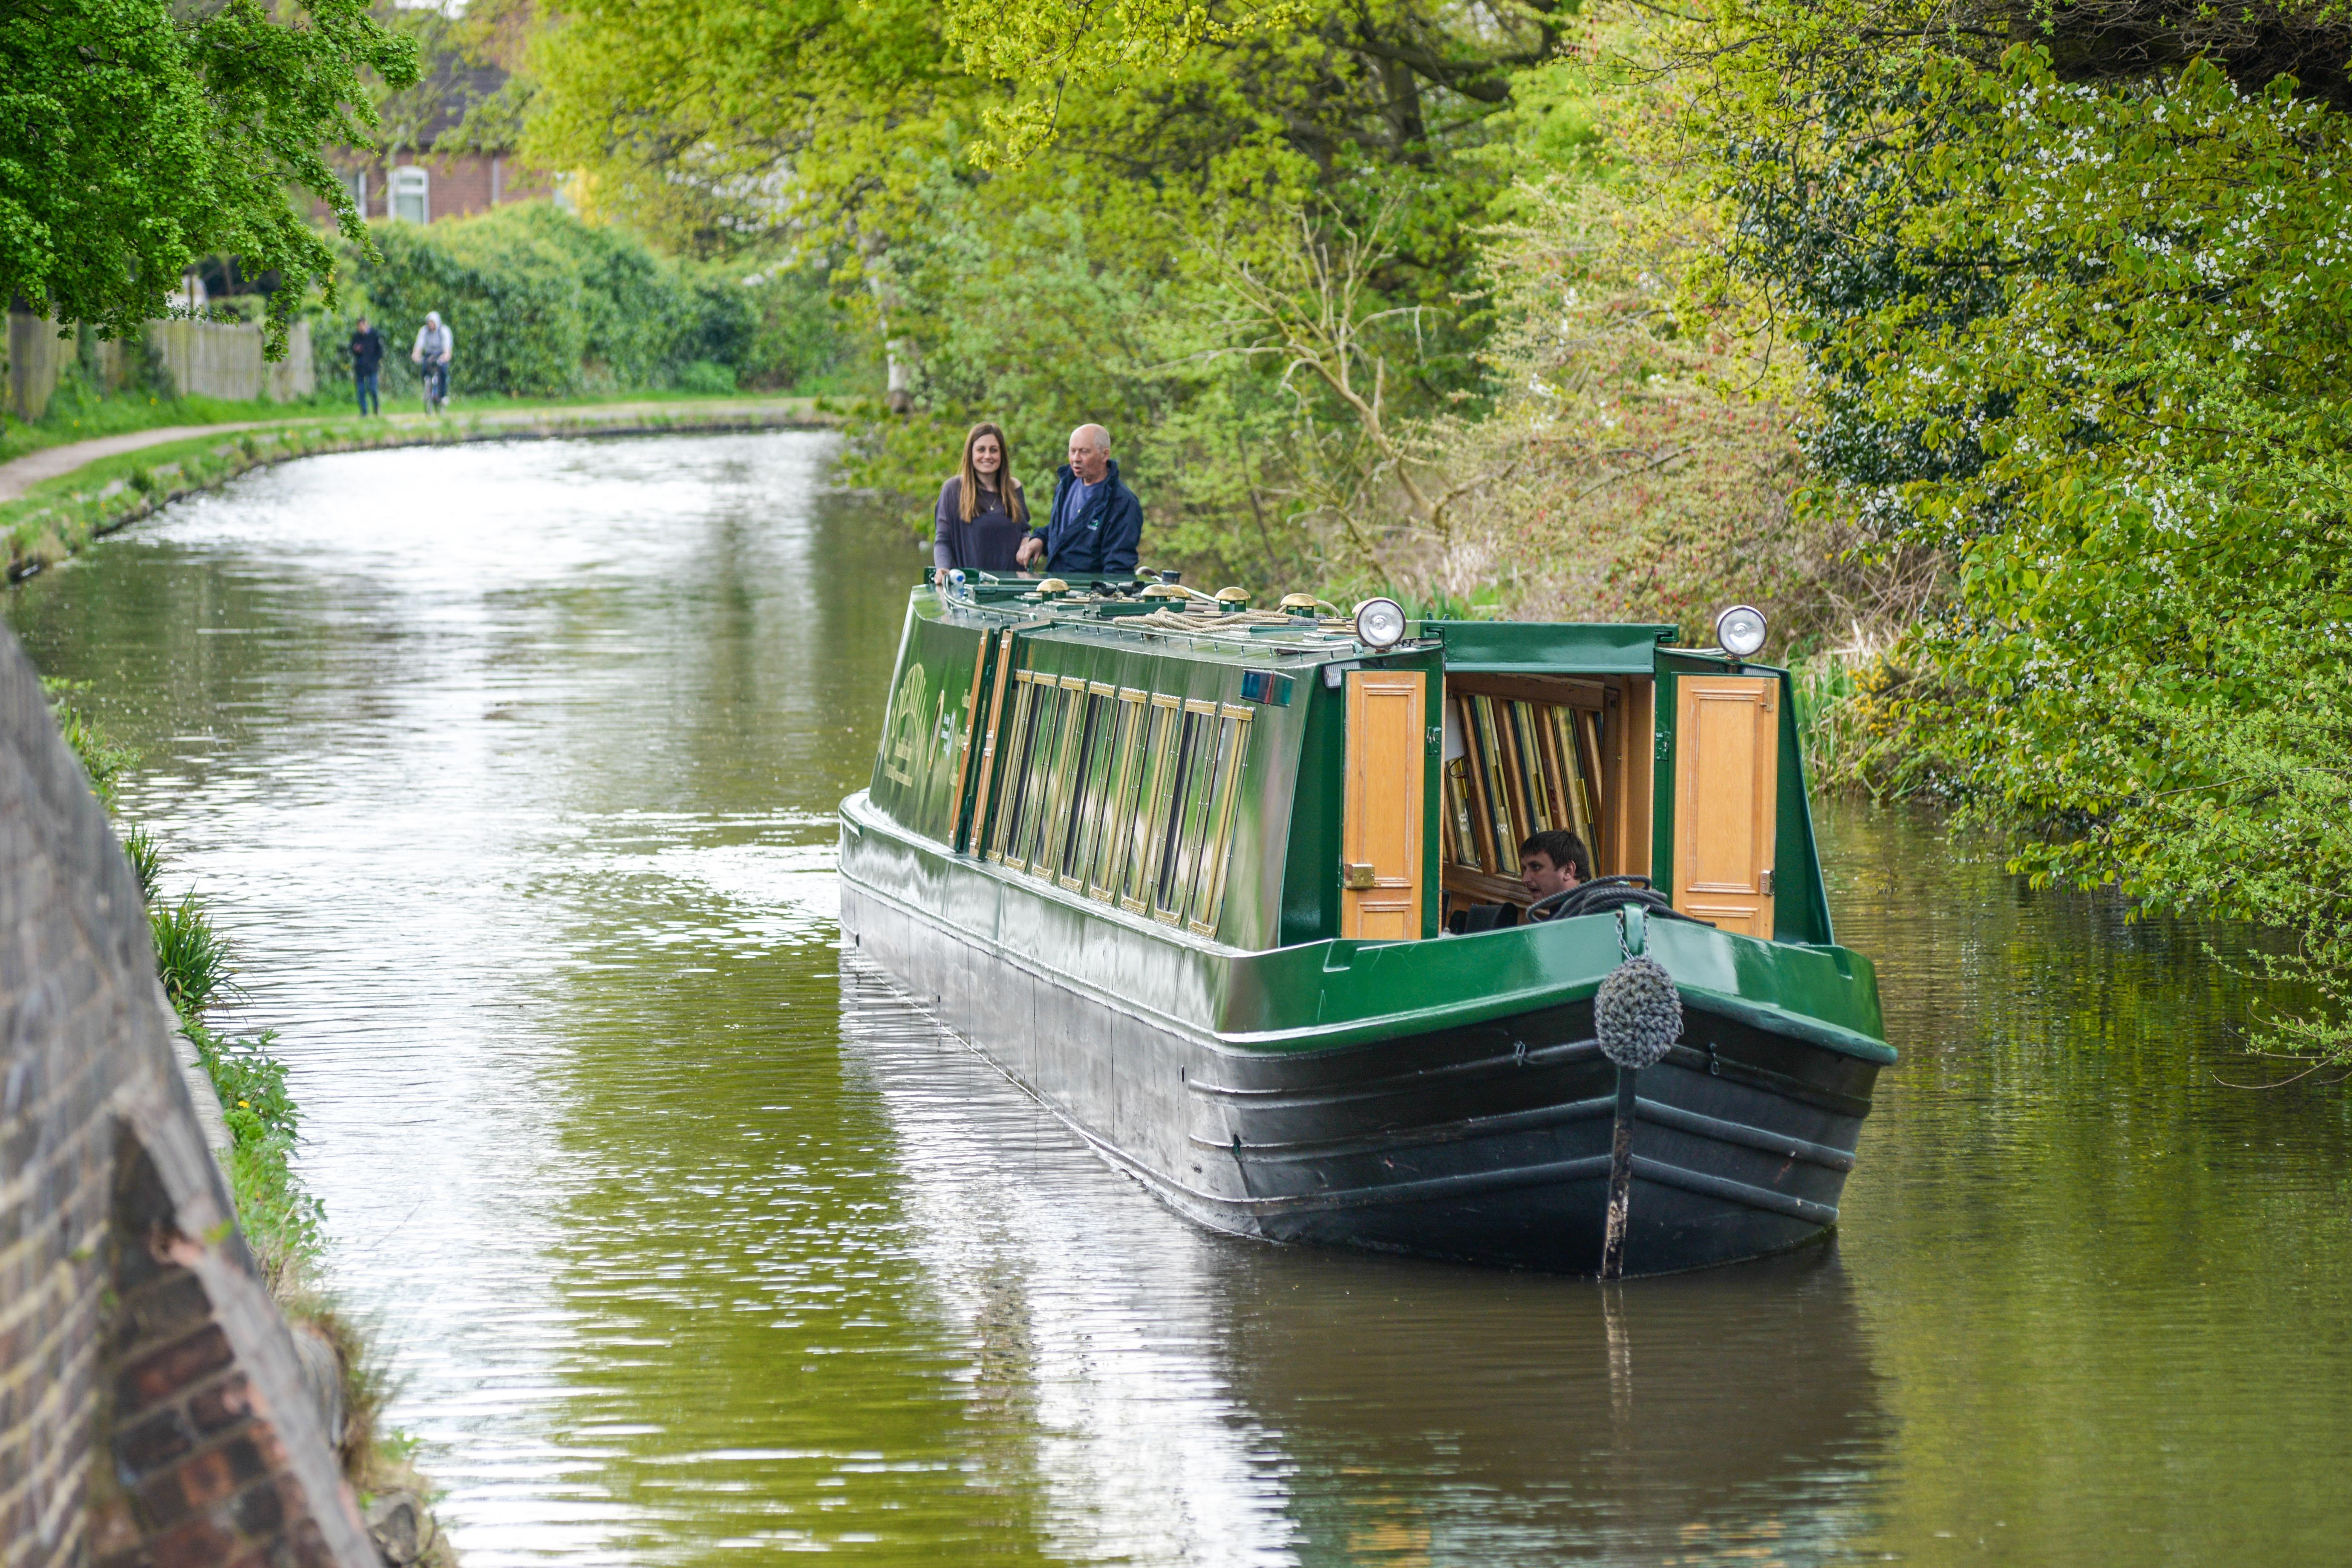 Come aboard the Coventrian for charity fundraising cruises